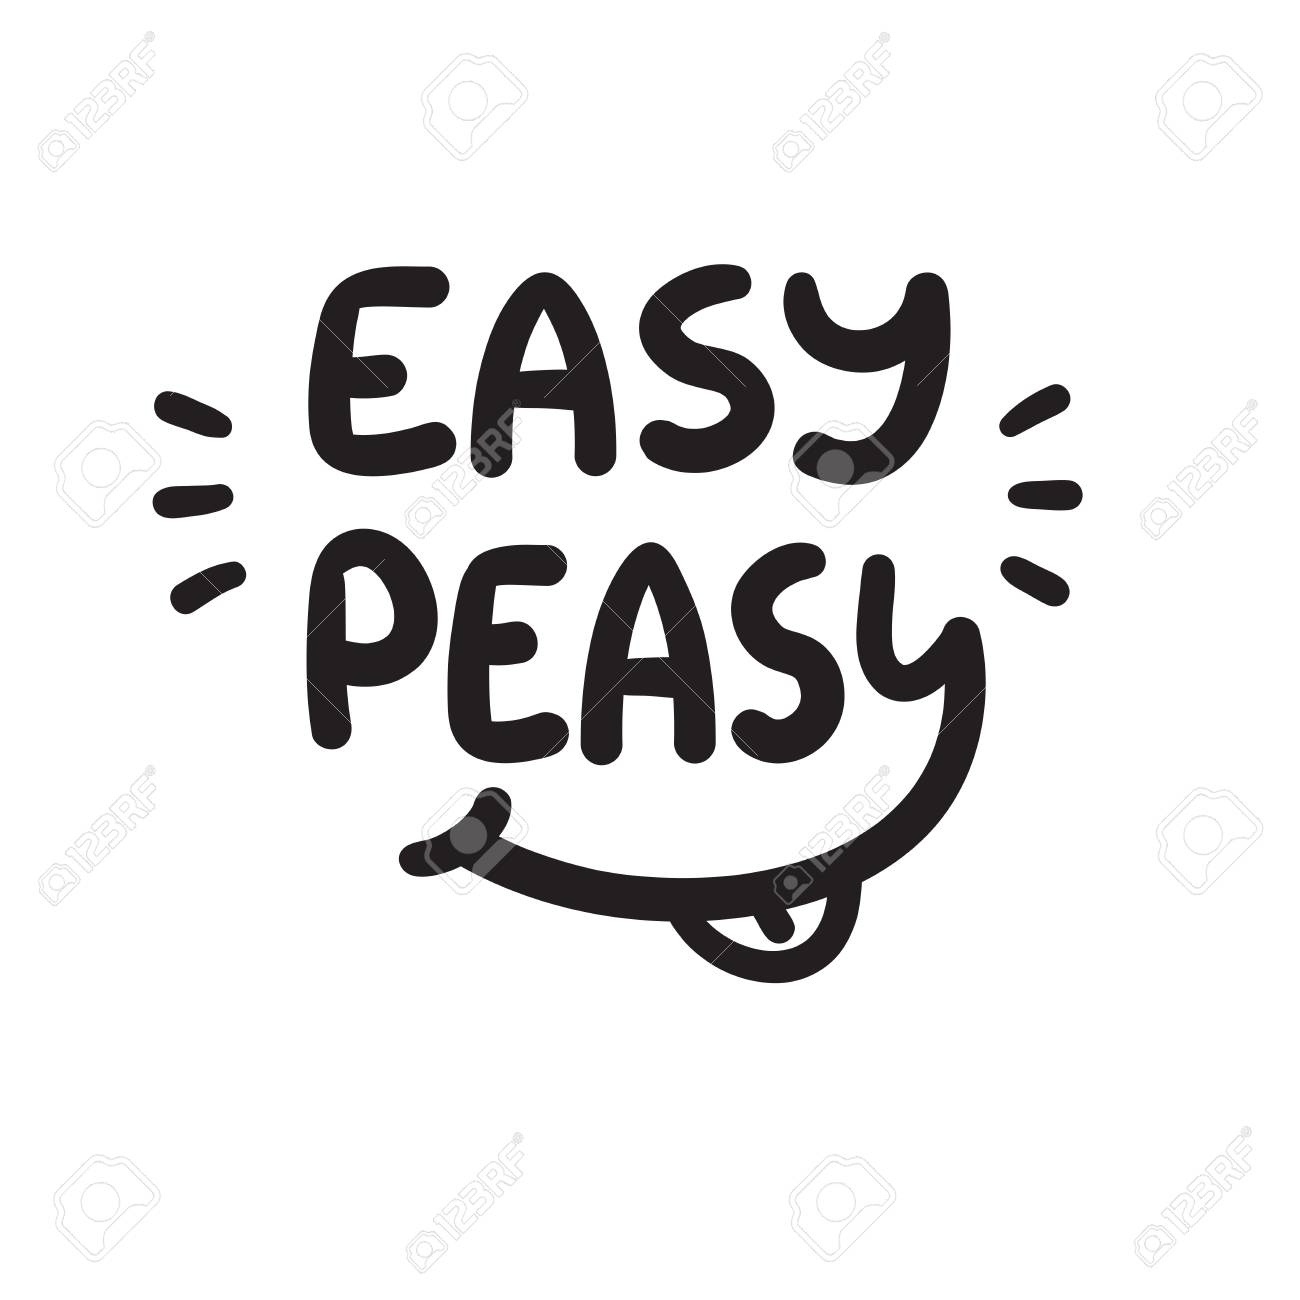 Easy Peasy - inspire and motivational quote.Hand drawn funny lettering. Print for inspirational poster, t-shirt, bag, cups, card, sticker, badge. Simple cute original vector - 108563971